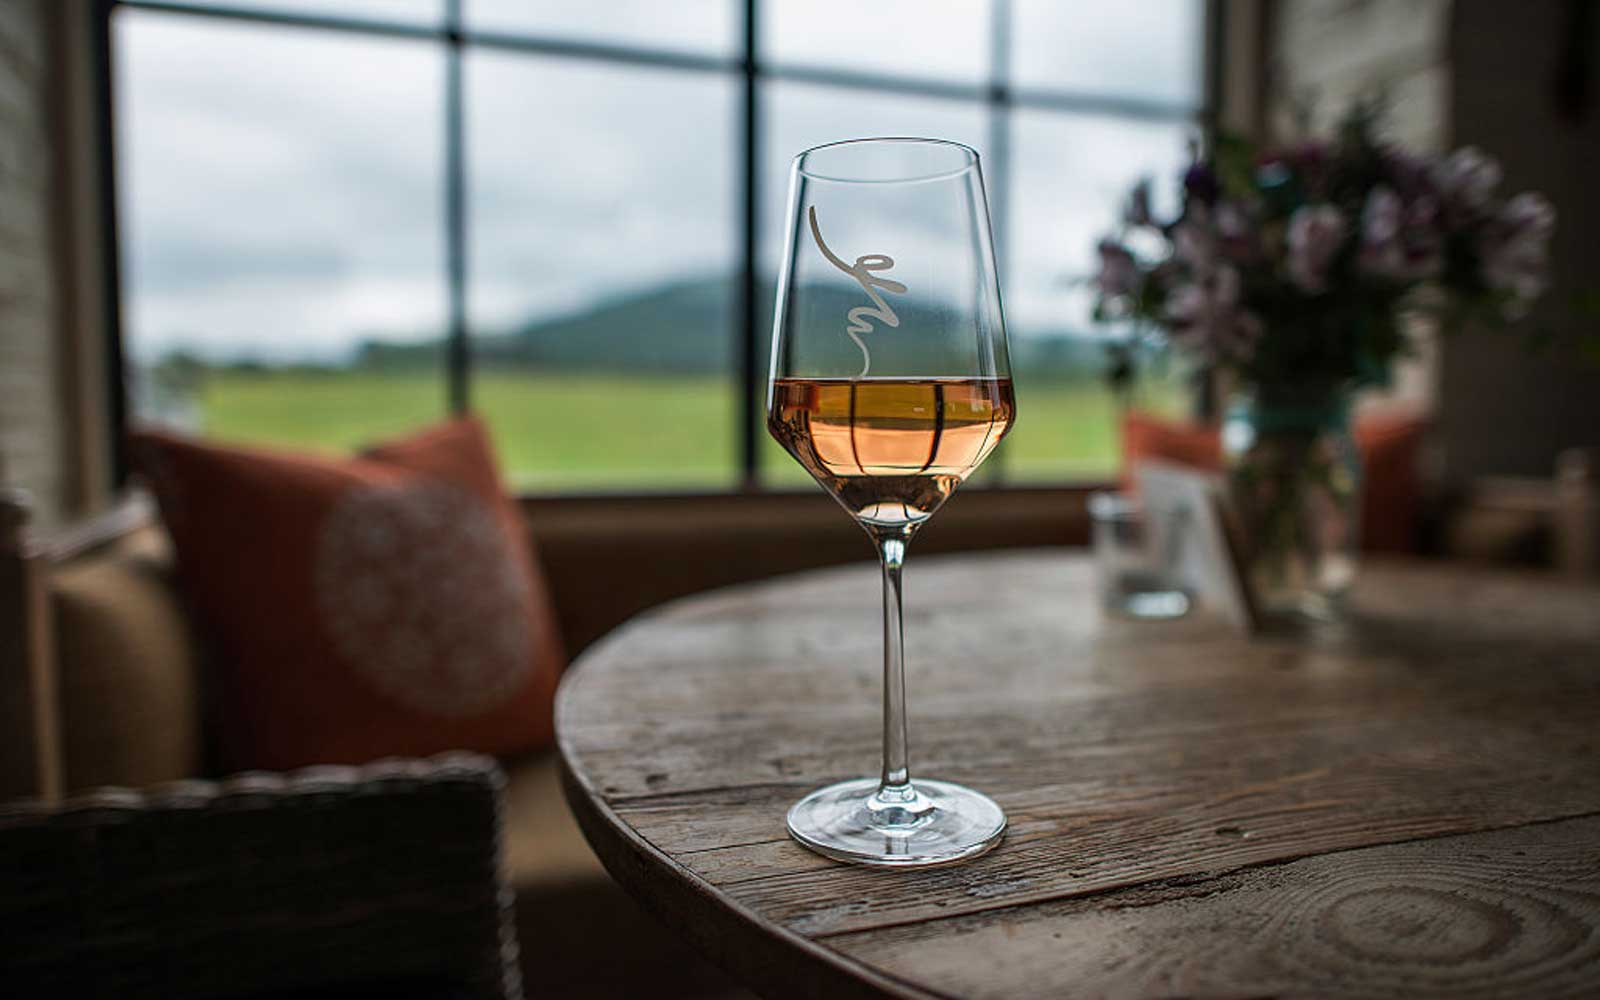 MADISON, VA - SEPTEMBER 8: A glass of rose at Early Mountain Vineyards in Madison, VA on September 8, 2014.  (Photo by Bonnie Jo Mount/The Washington Post via Getty Images)